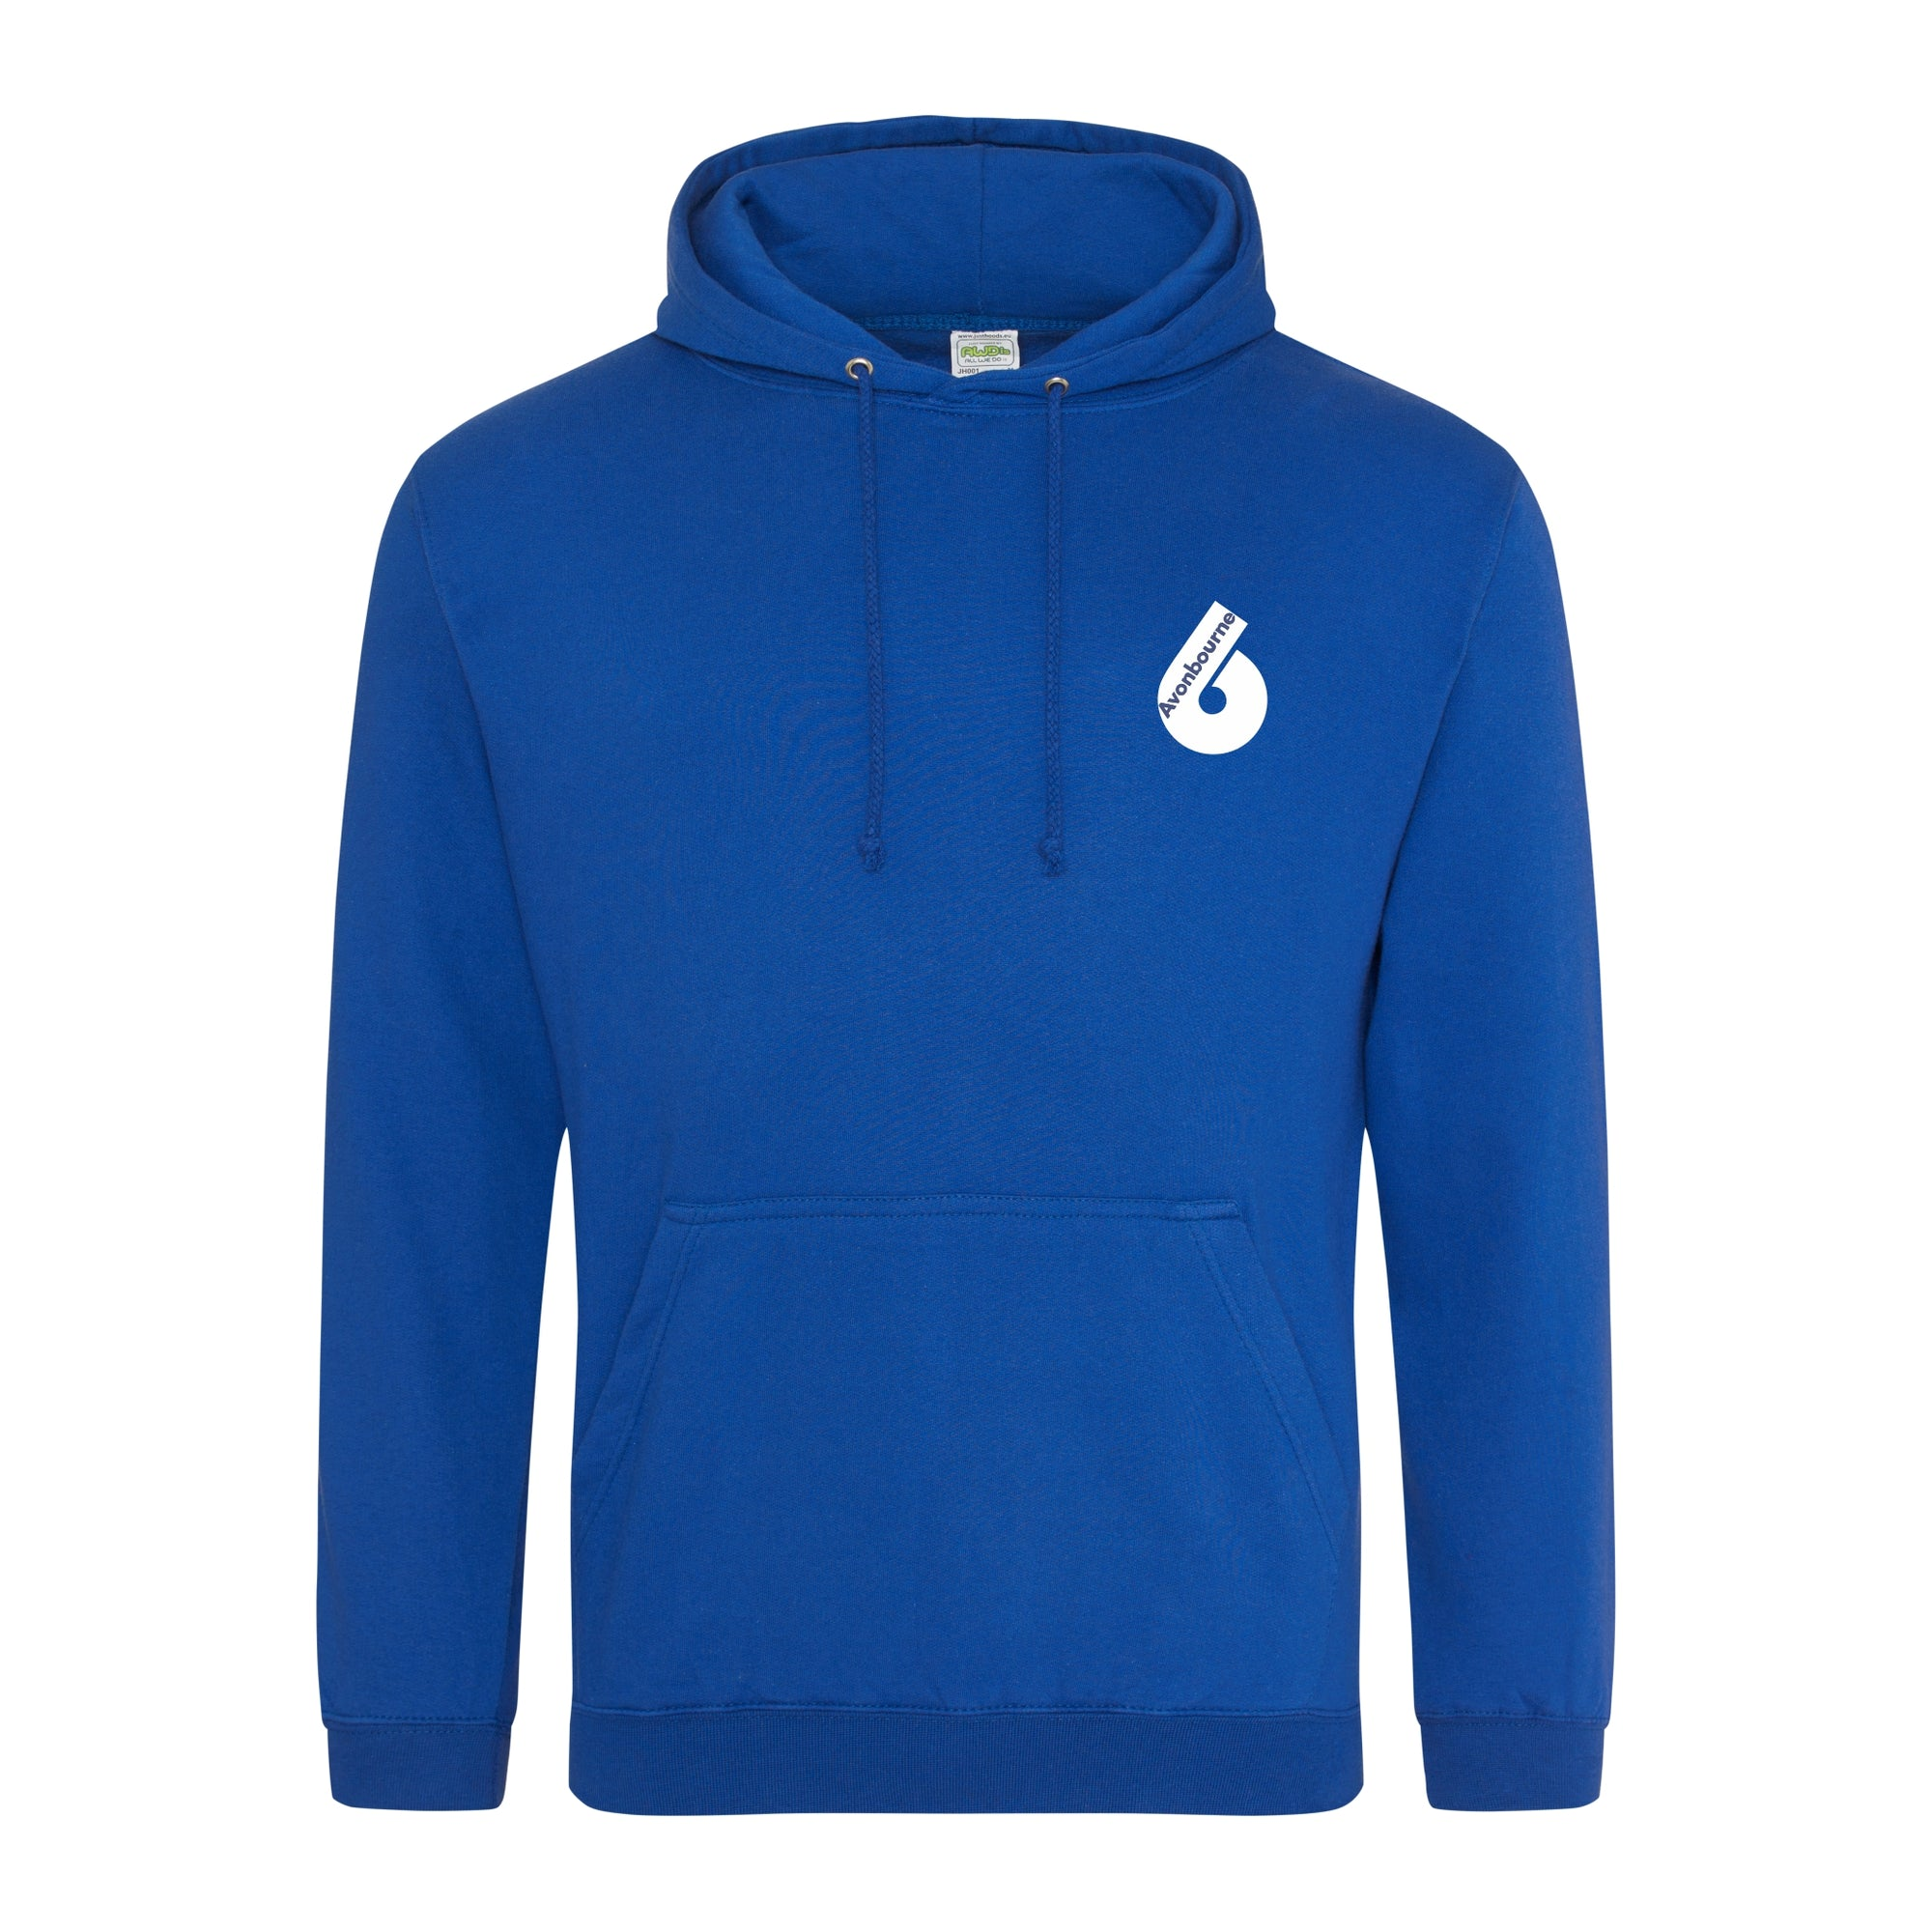 Avonbourne 6th Form Leavers Hoody 2019 - Royal Blue